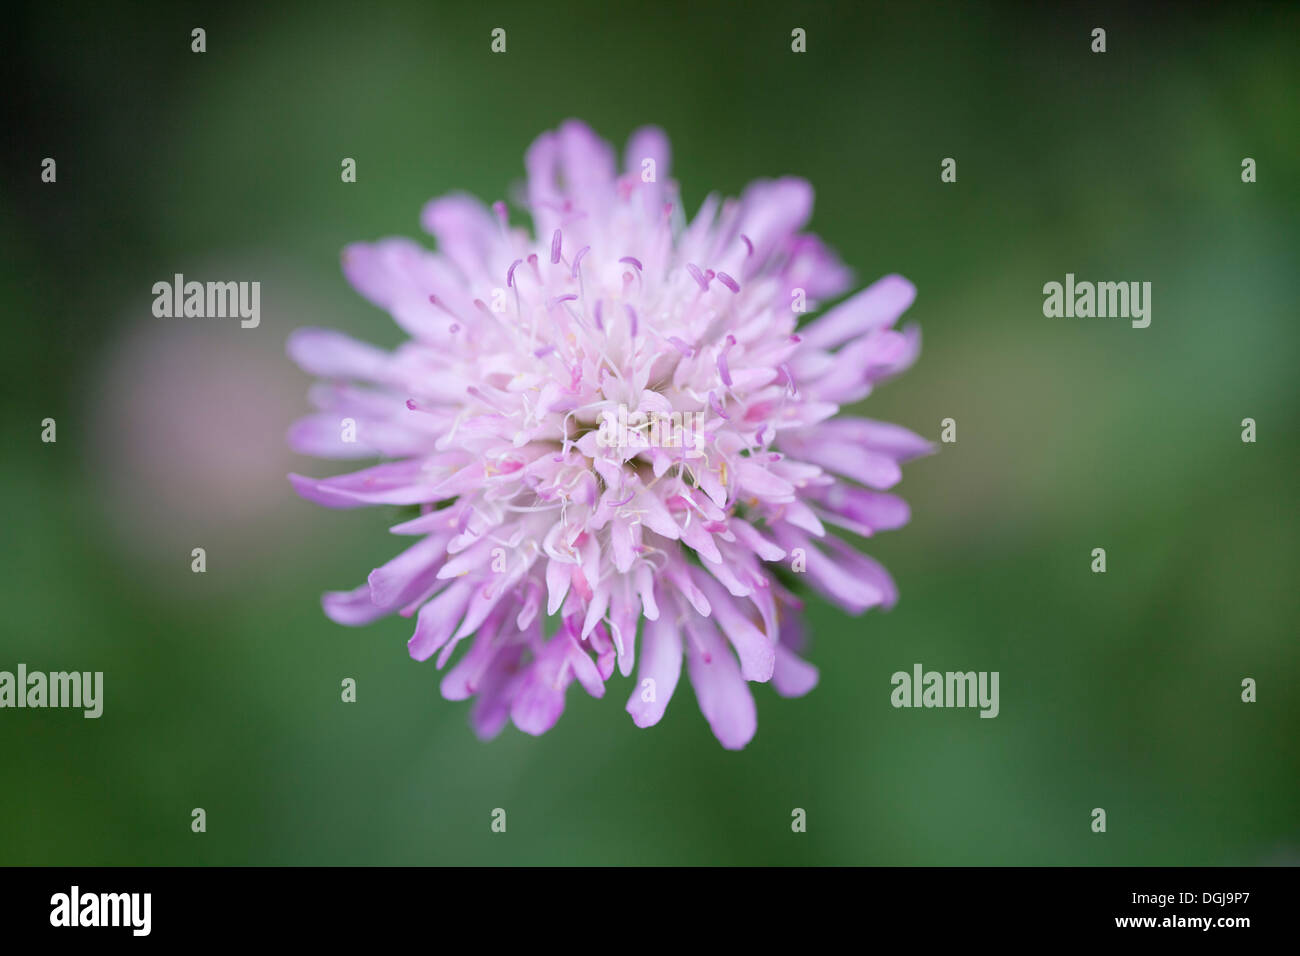 Close up on one Field Scabious flower growing outdoors with shallow depth of field and diffuse green background. - Stock Image